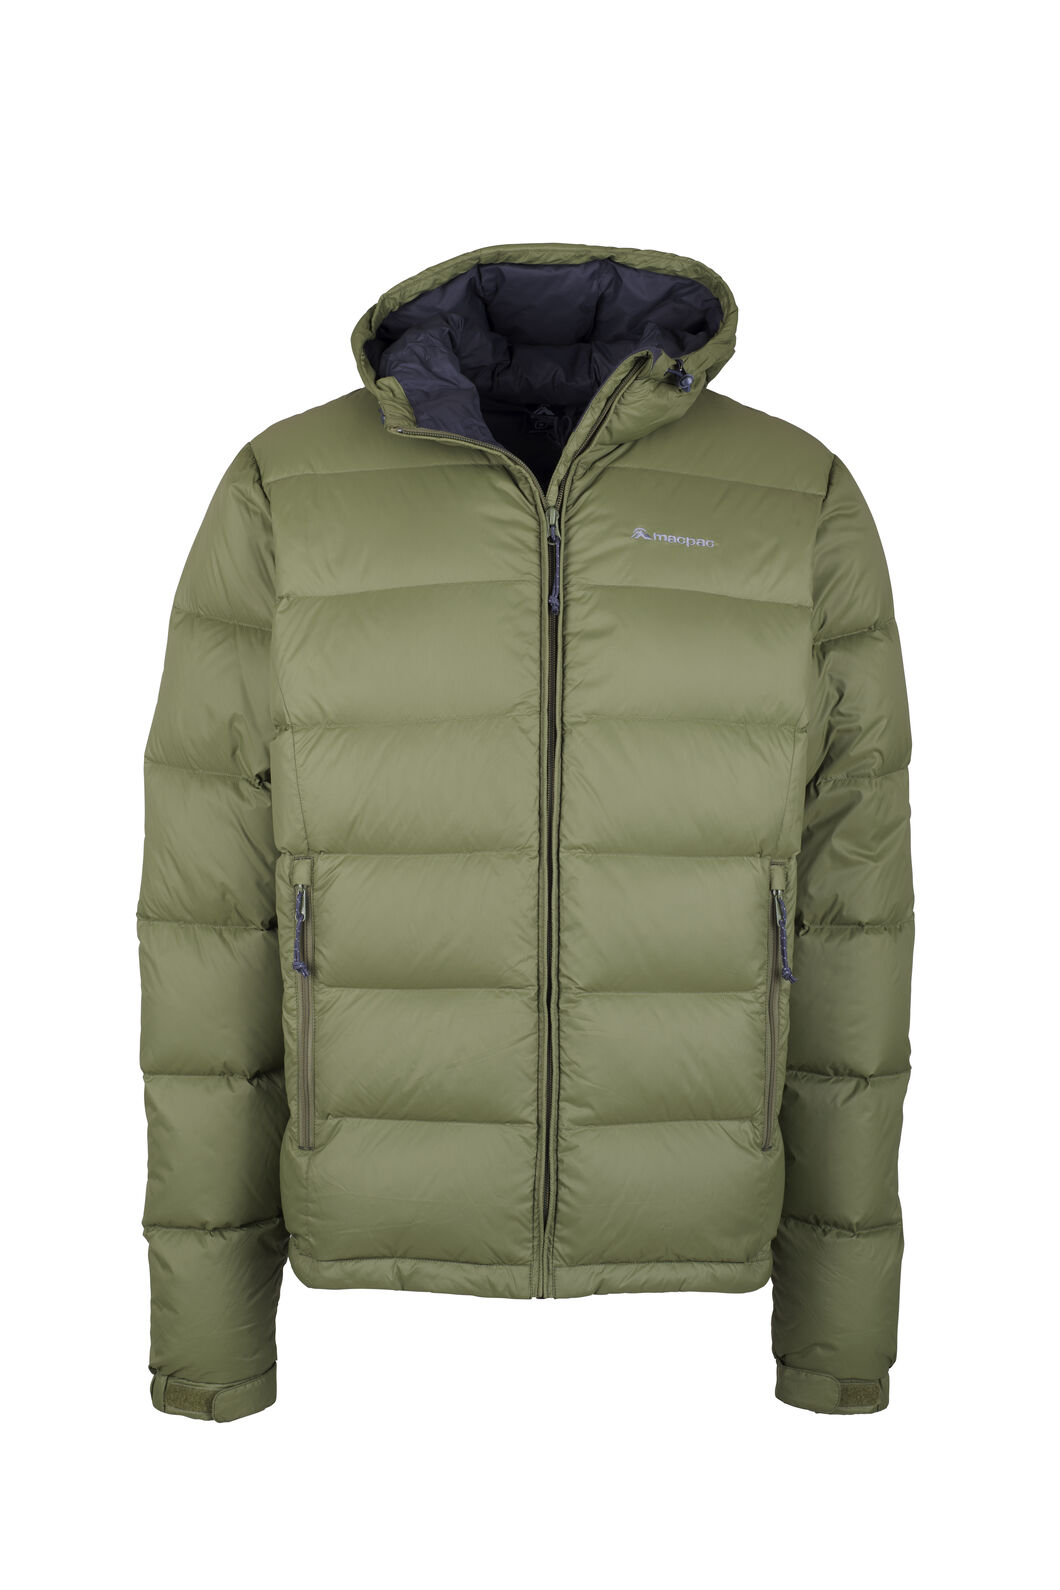 Macpac Halo Hooded Down Jacket - Men's, Loden Green, hi-res